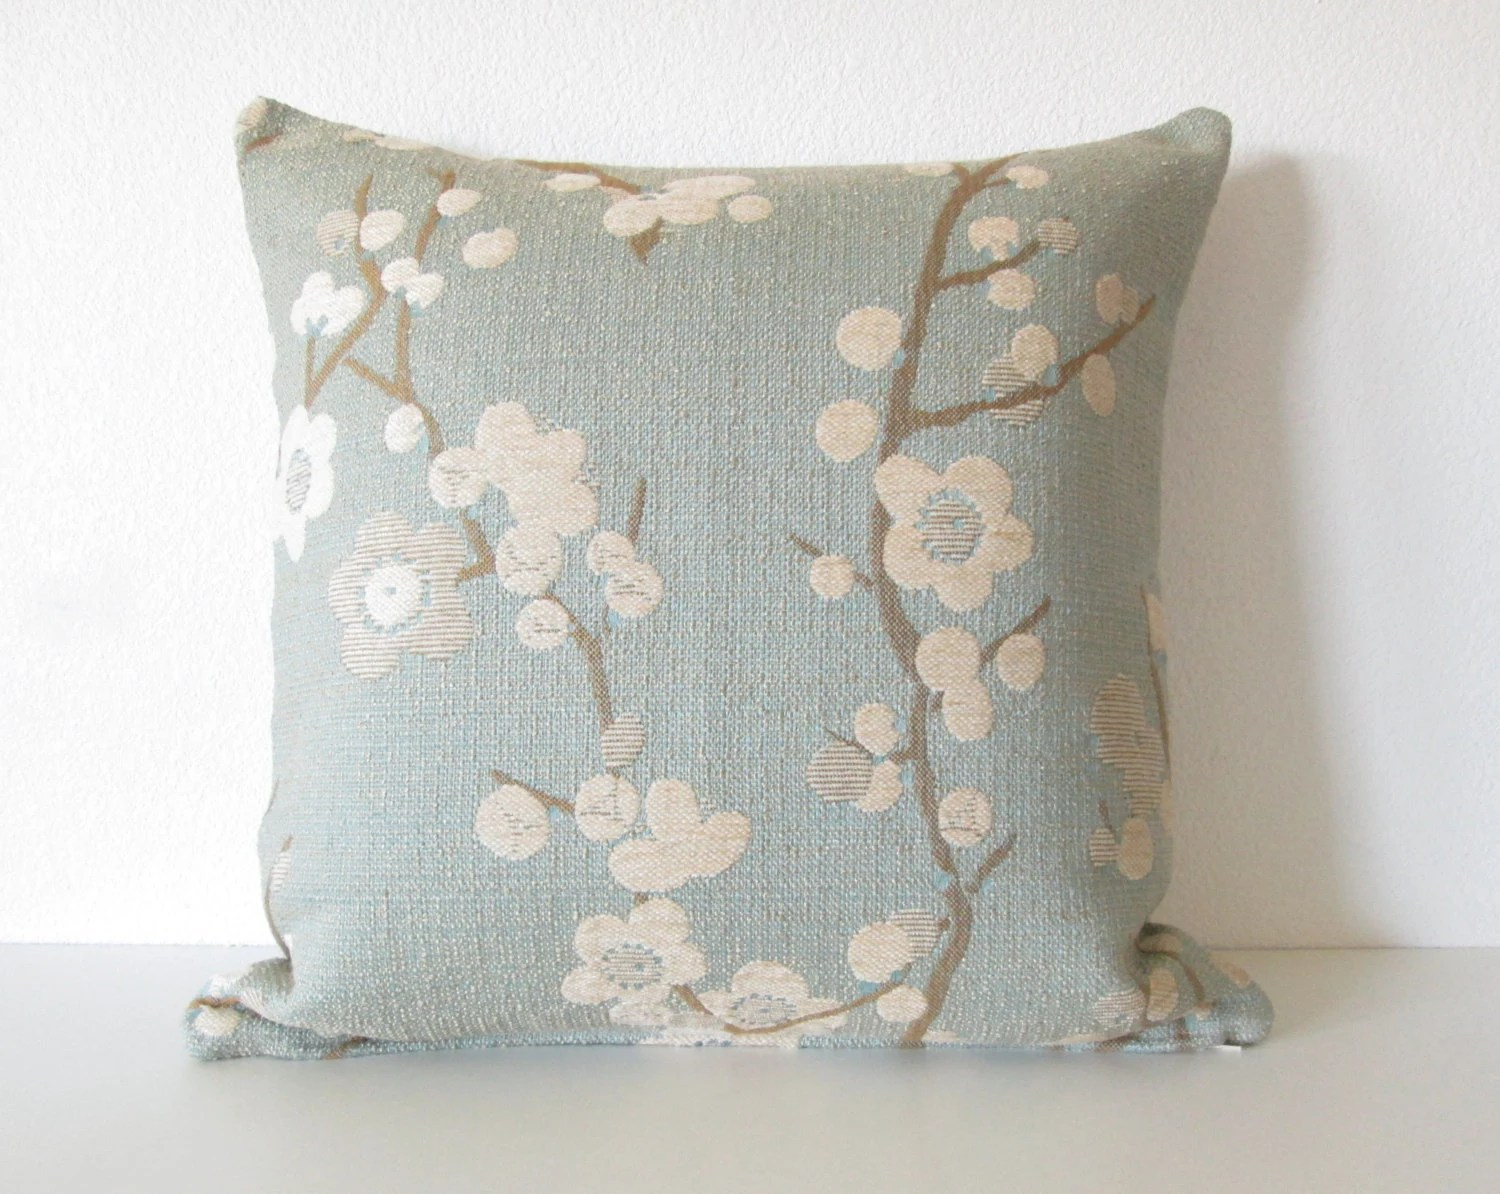 High End Designer Pillow Decorative pillow cover 20x20